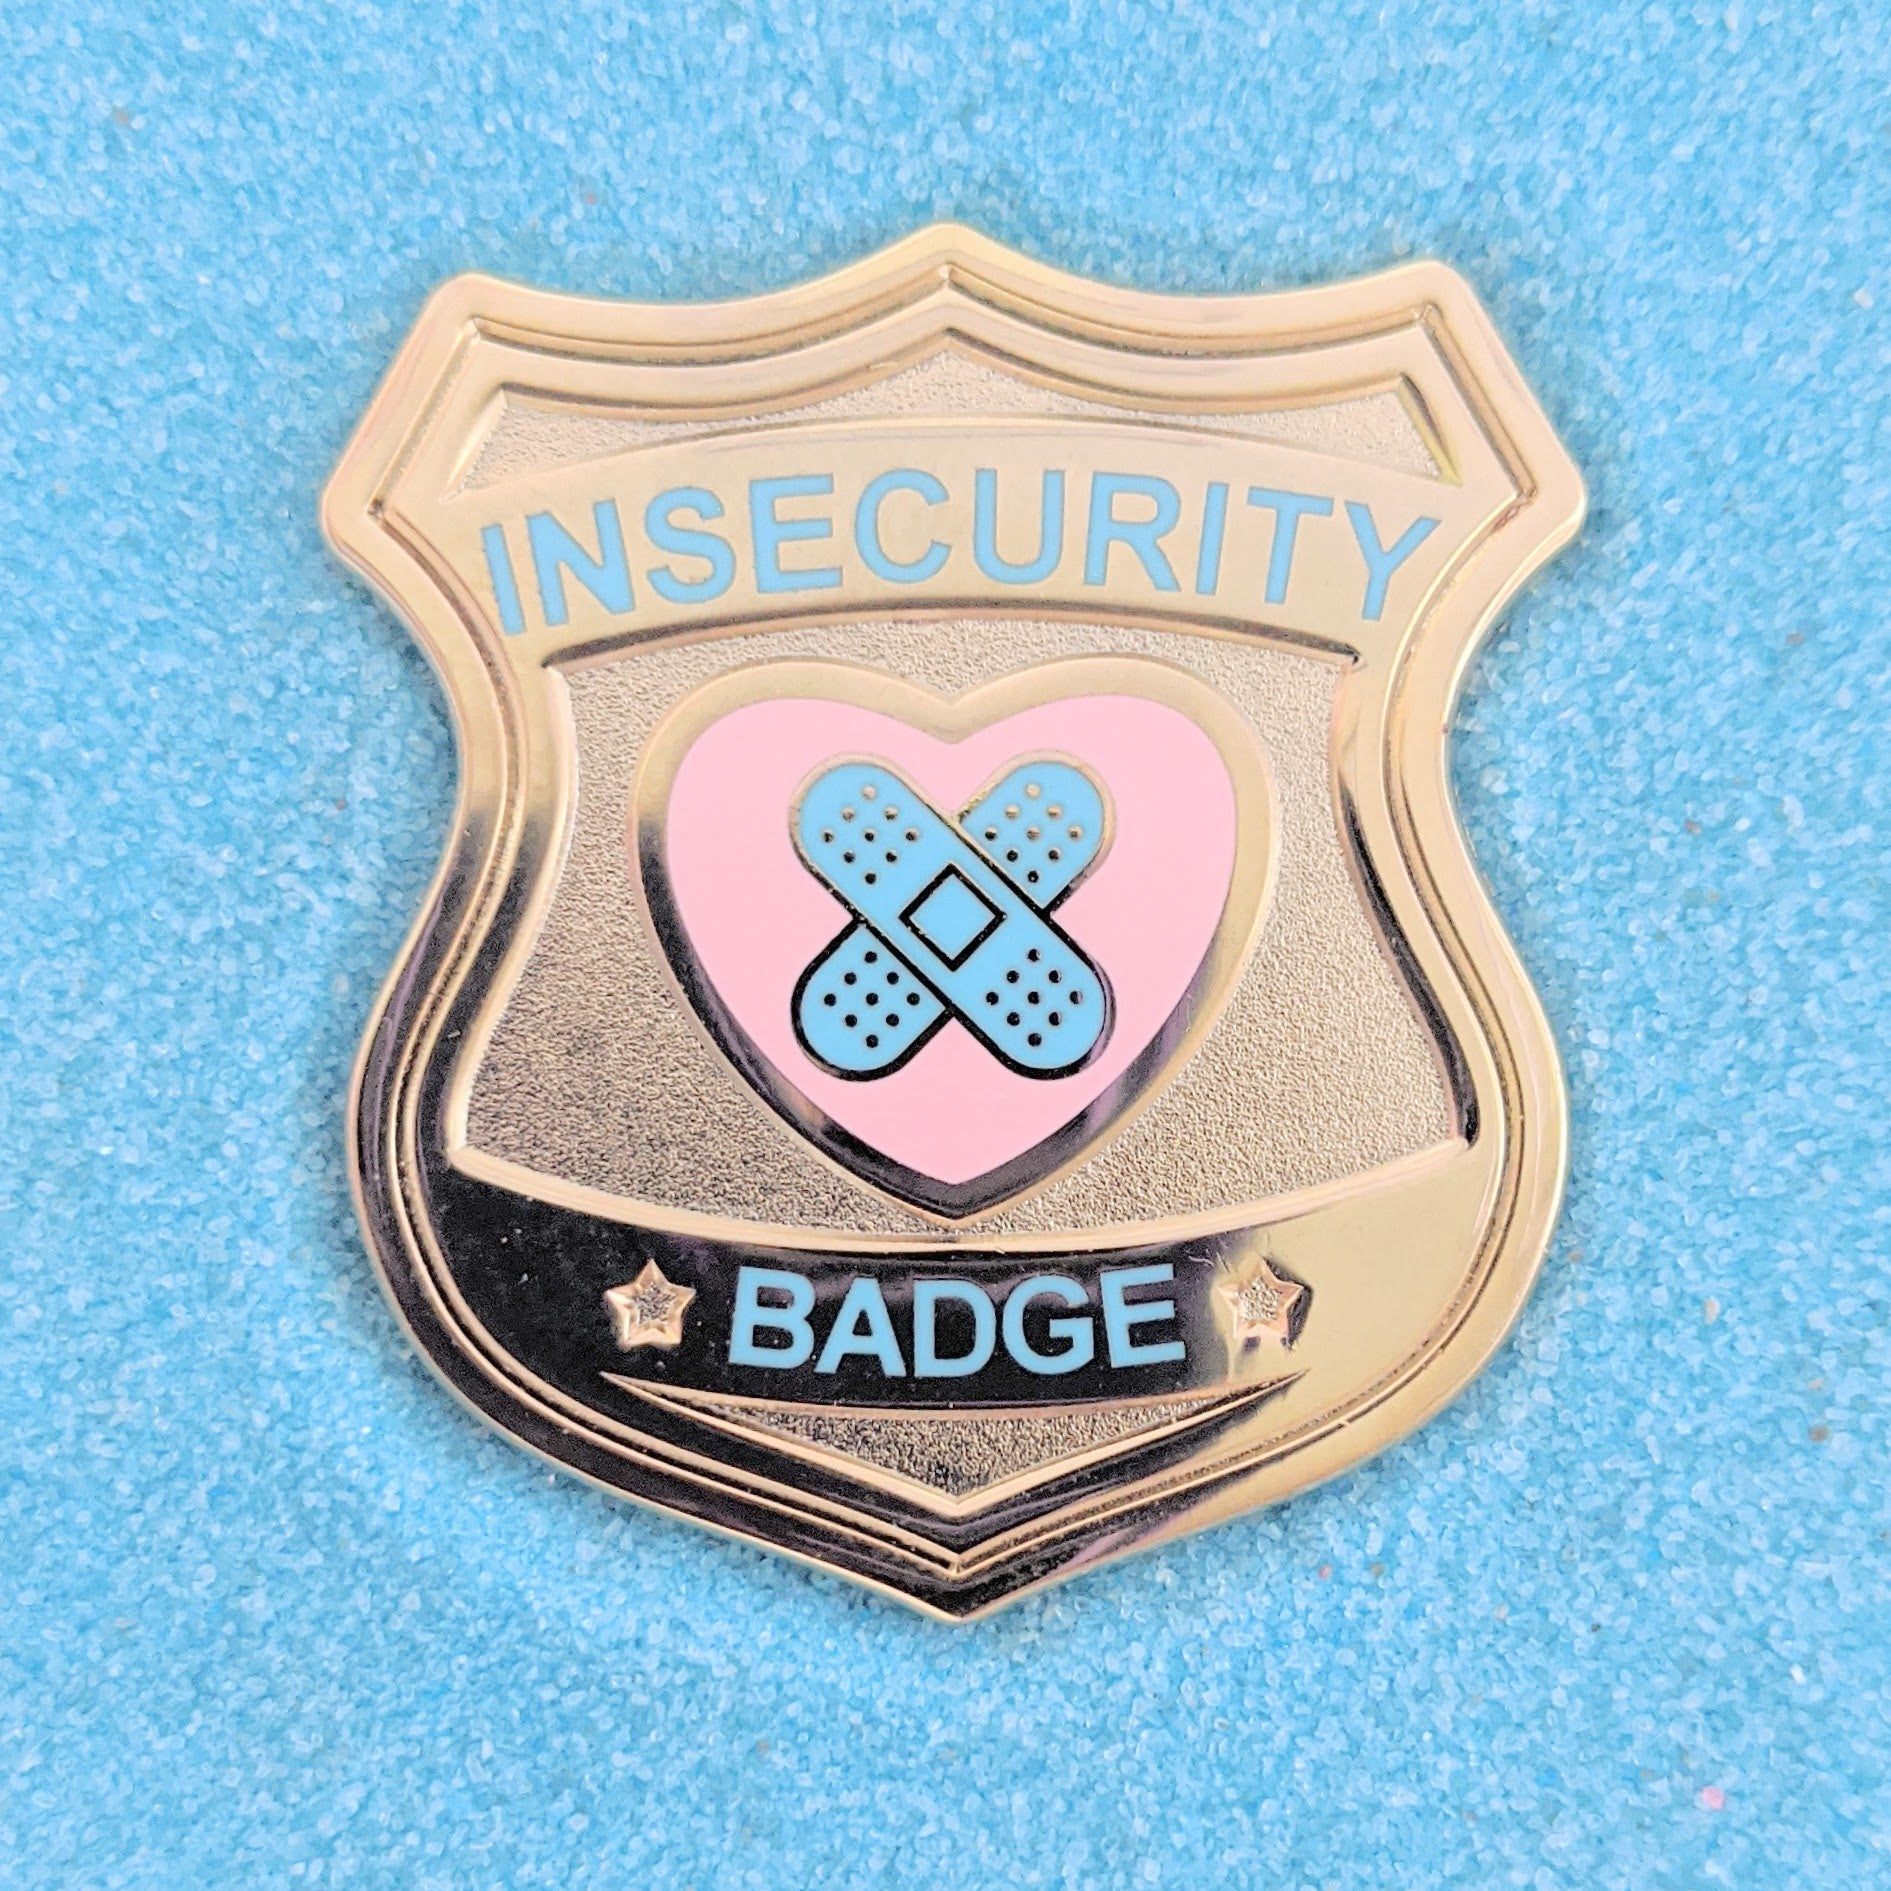 Insecurity Gold Badge - Enamel Pin